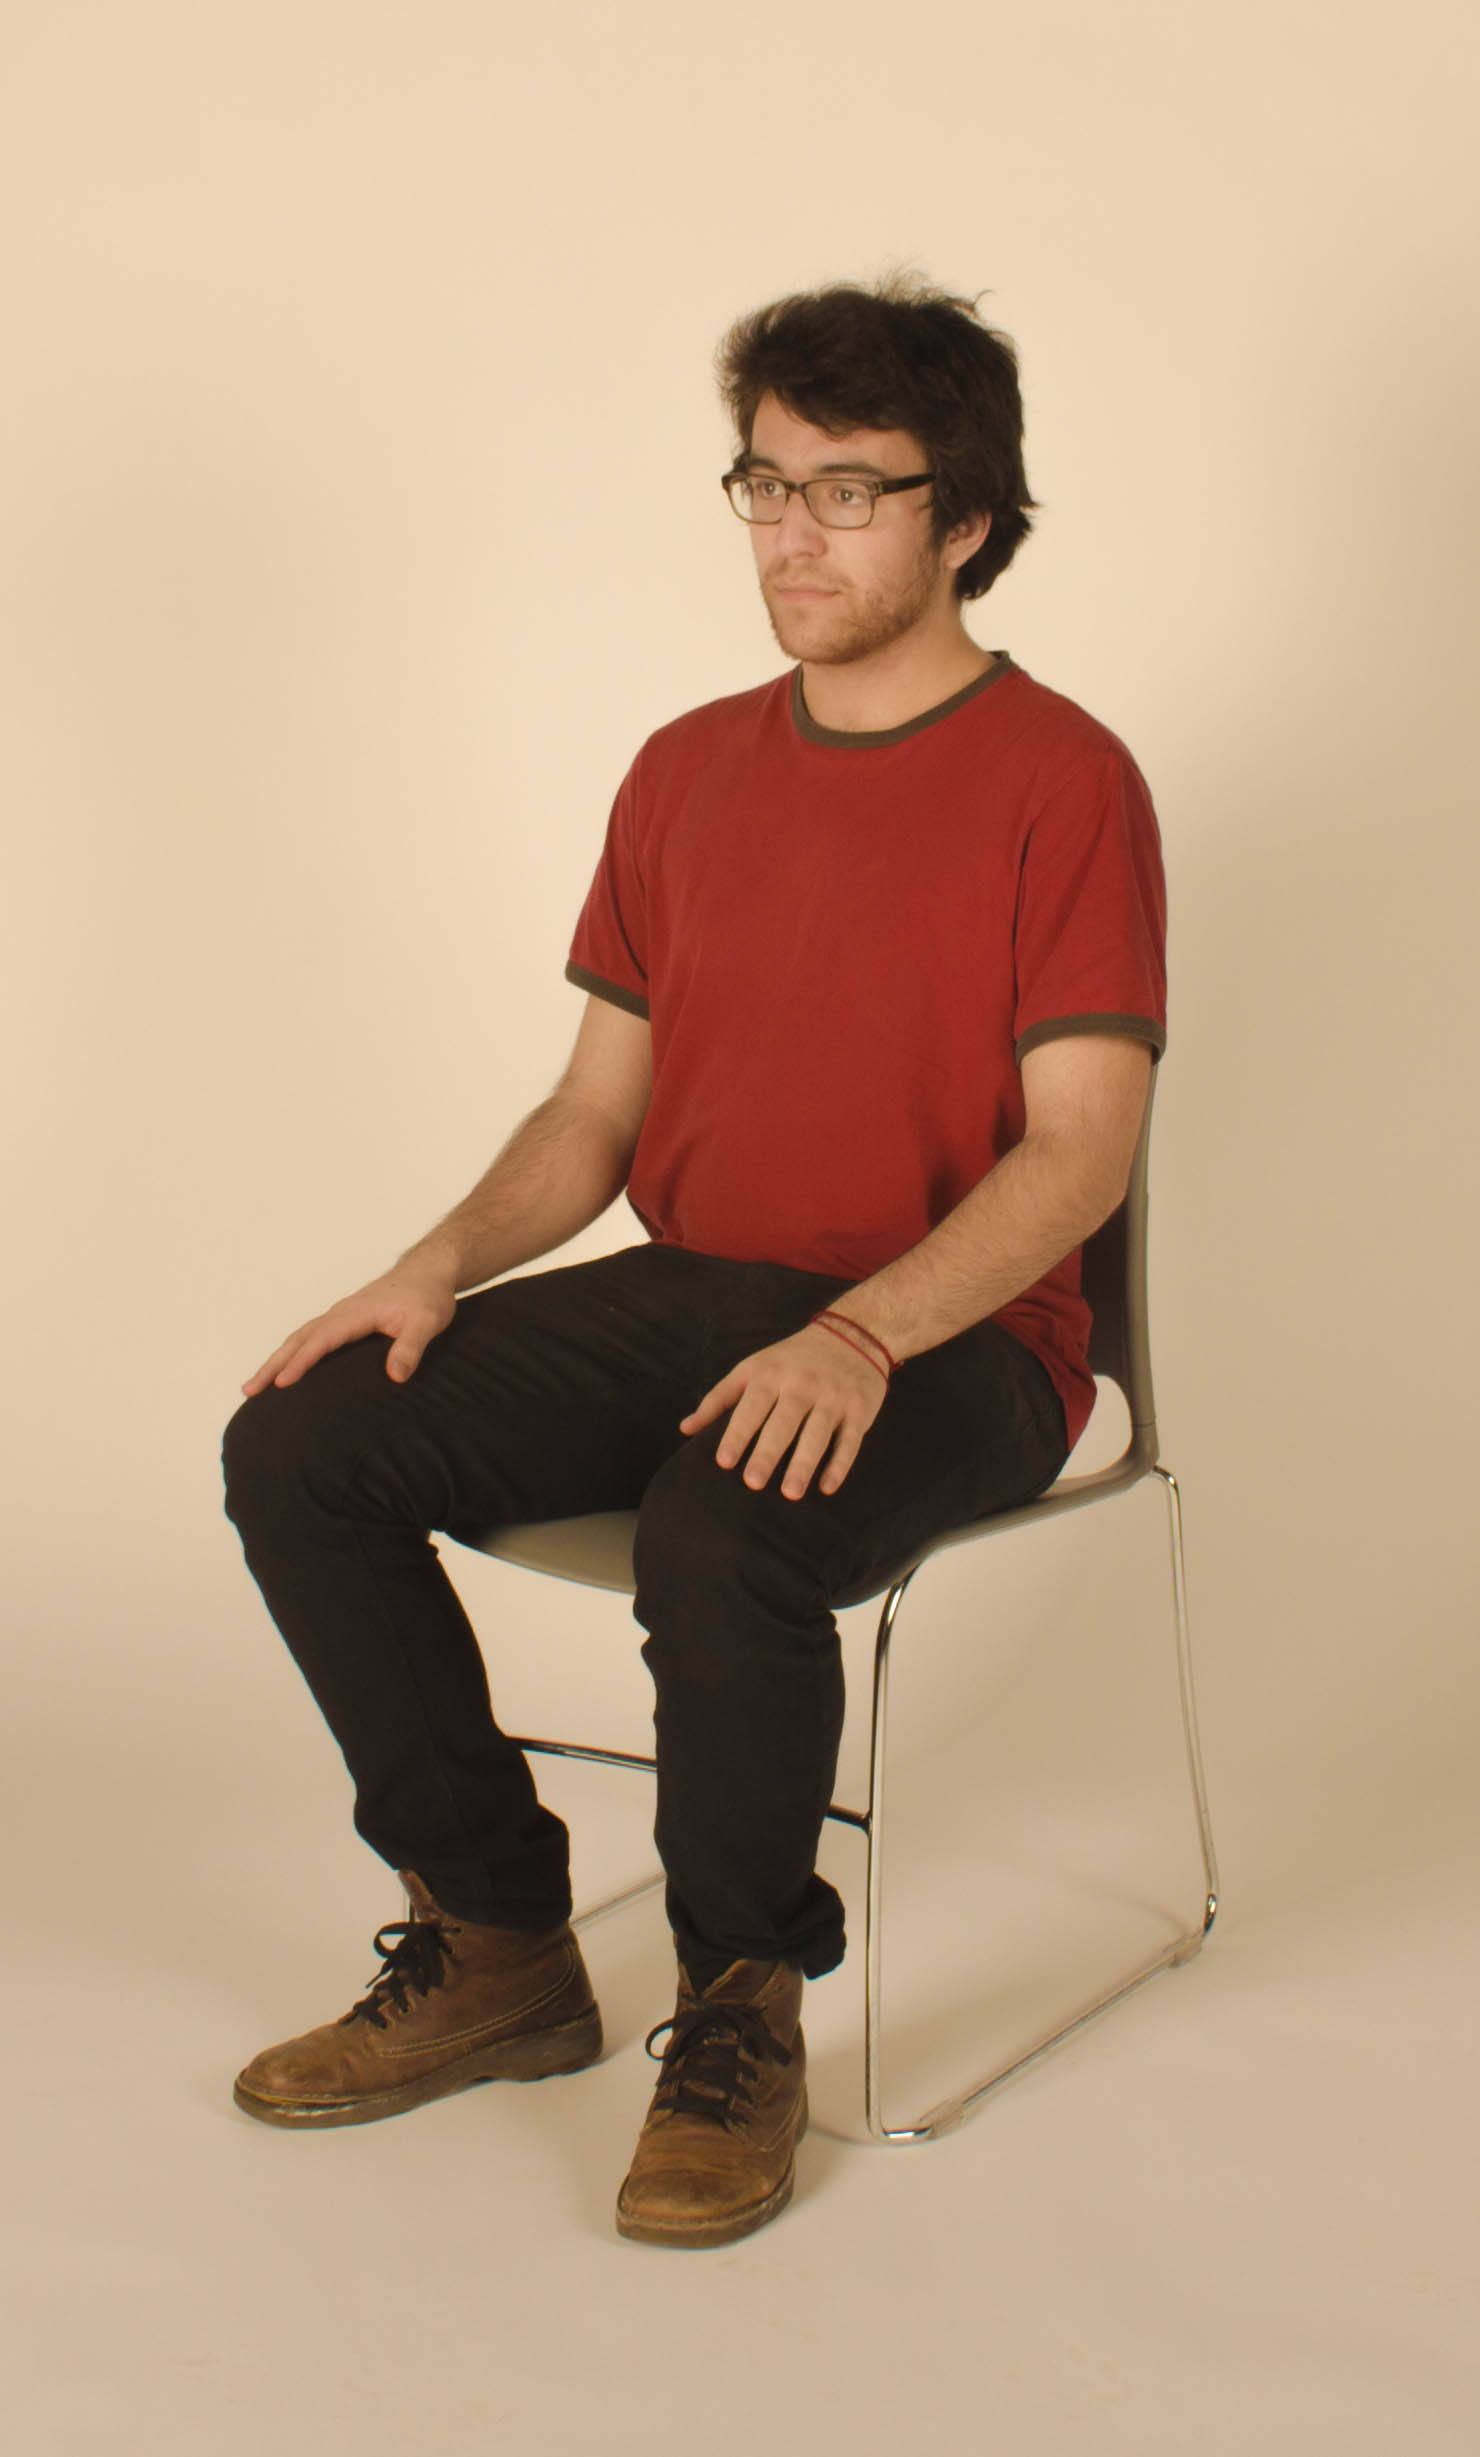 person sitting in chair back view png. file:young man sitting in a chair, feb 2014.jpg person chair back view png